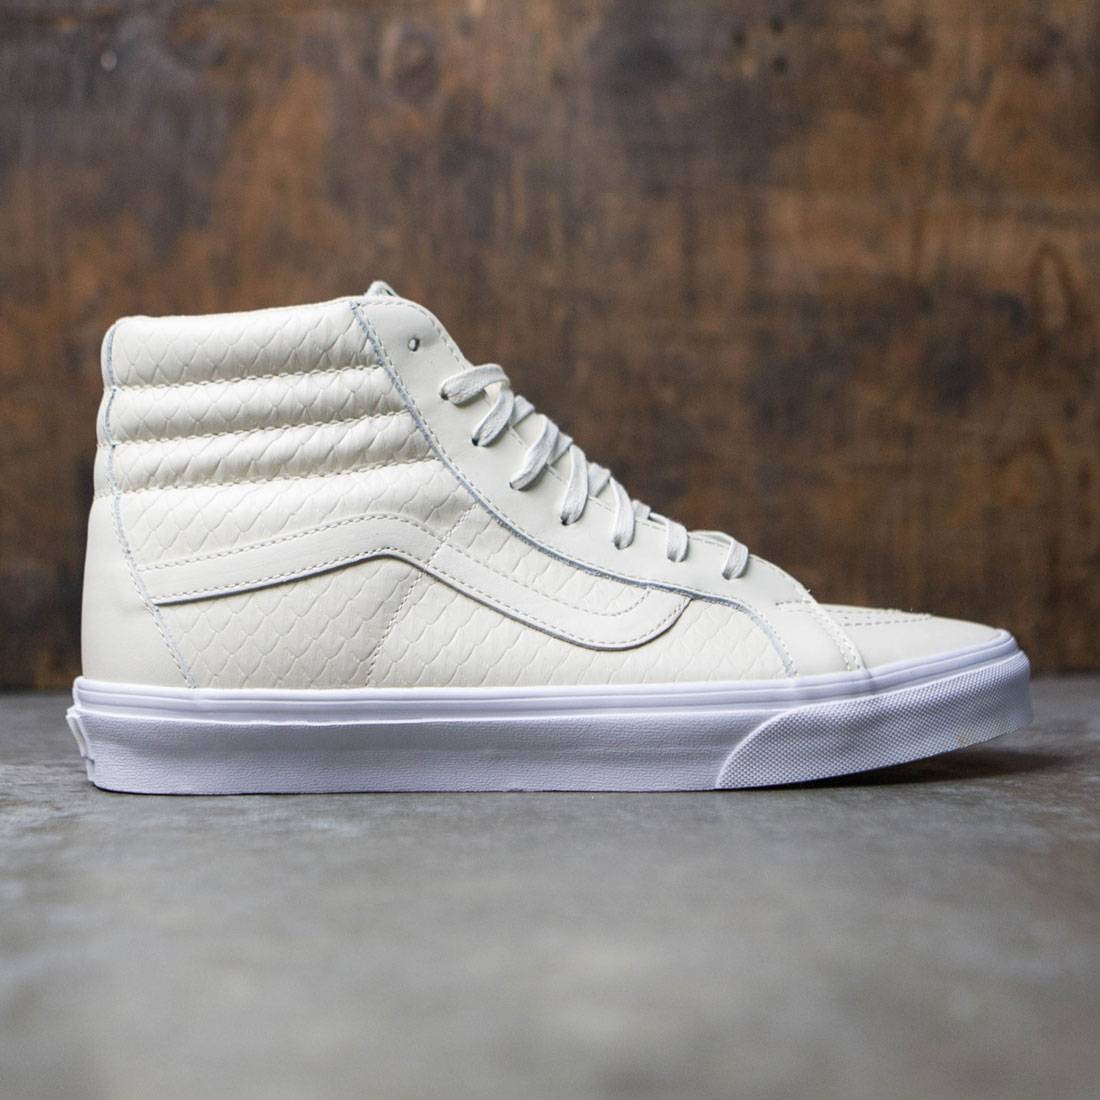 Vans Men Sk8-Hi Reissue DX - Armor Leather white   turtledove 3c1043040